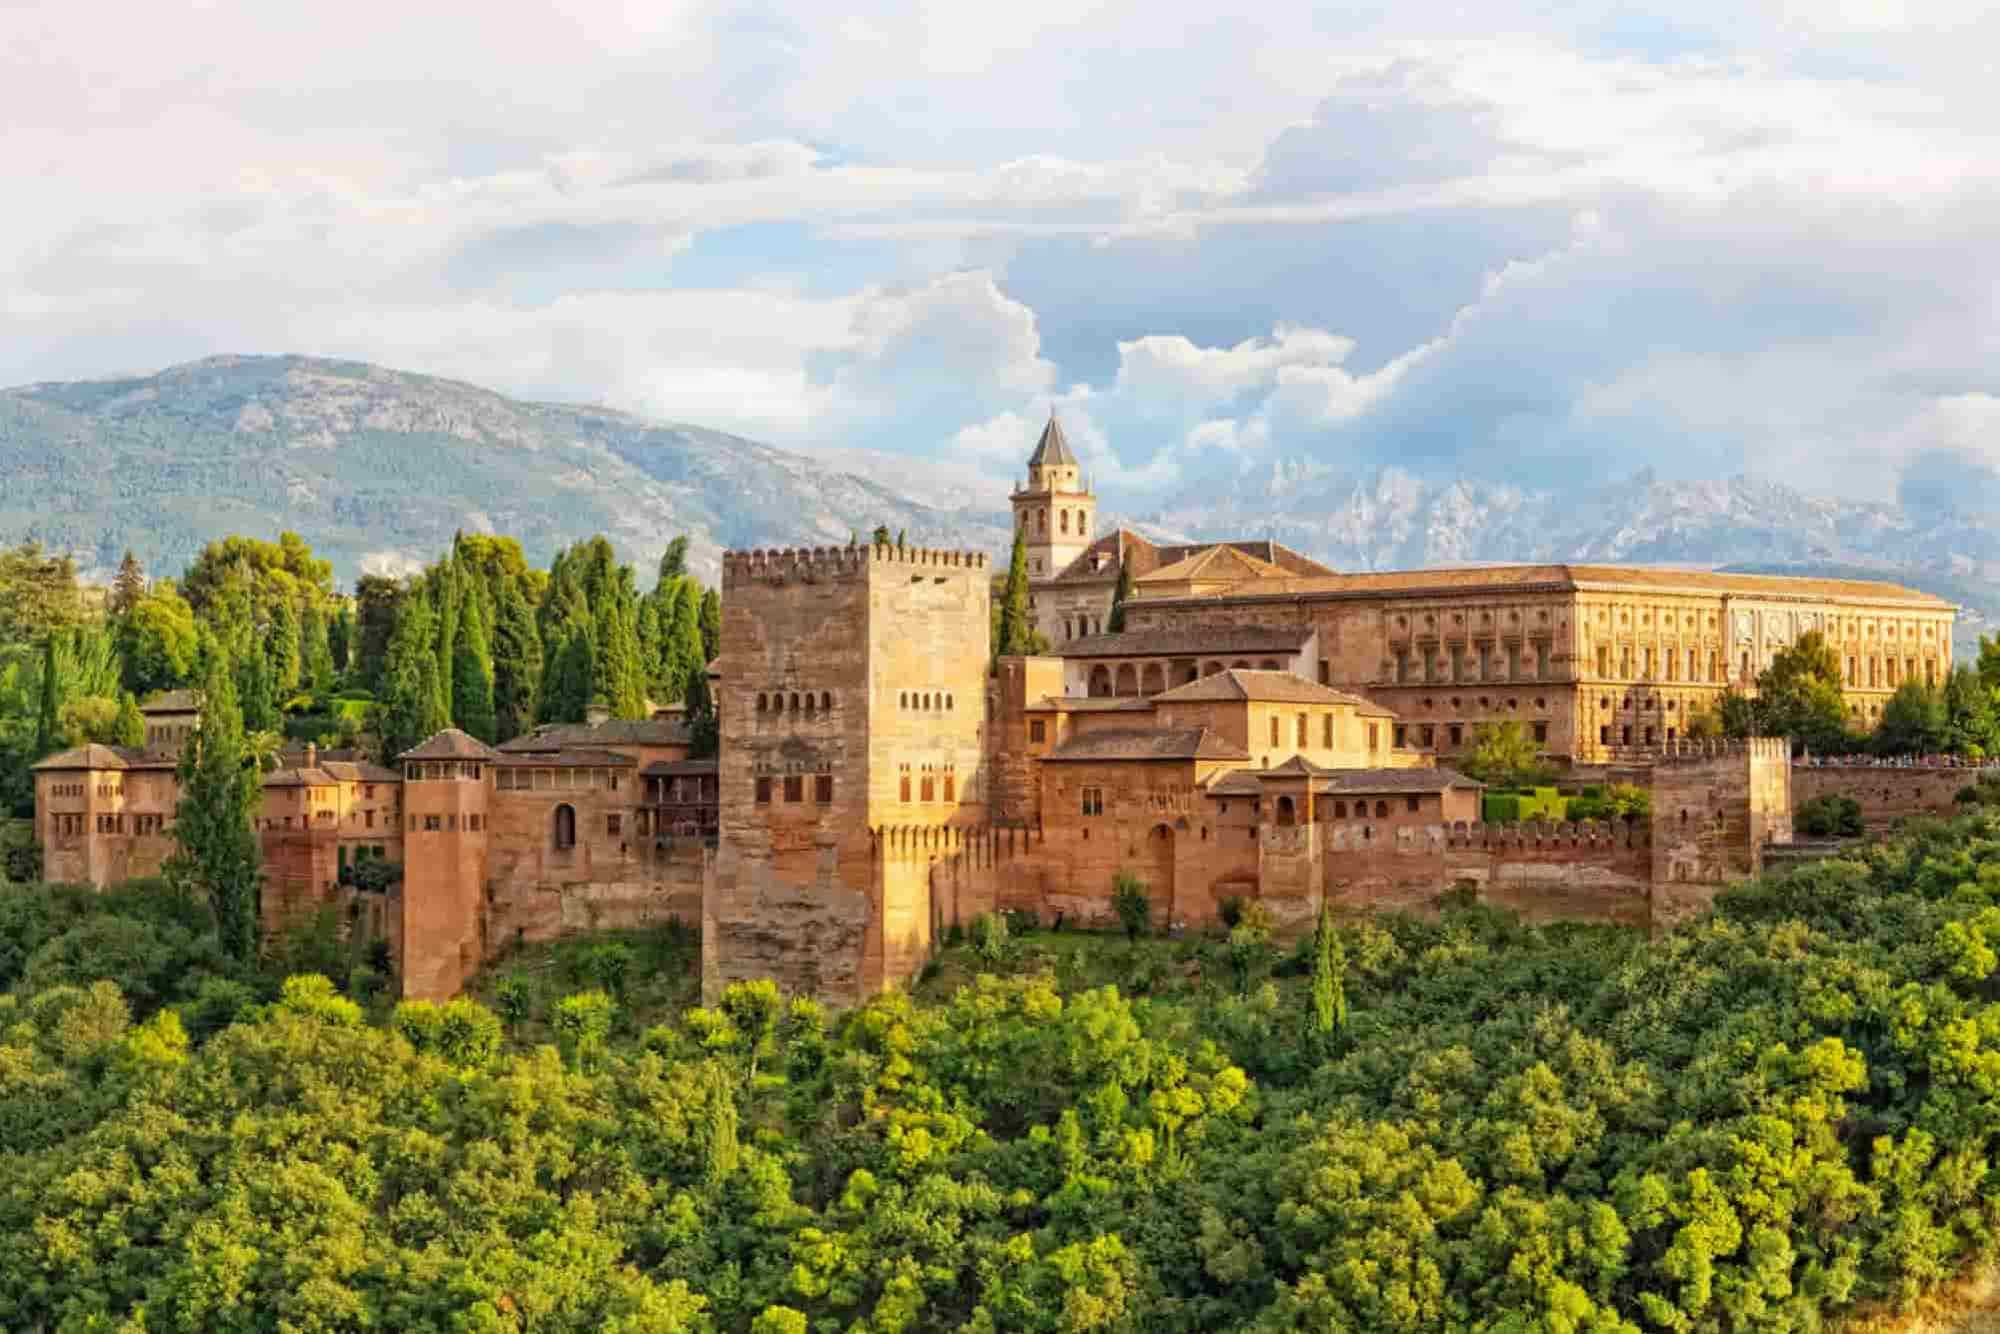 The Alhambra, the firts waypoint of this South Spain Road Trip